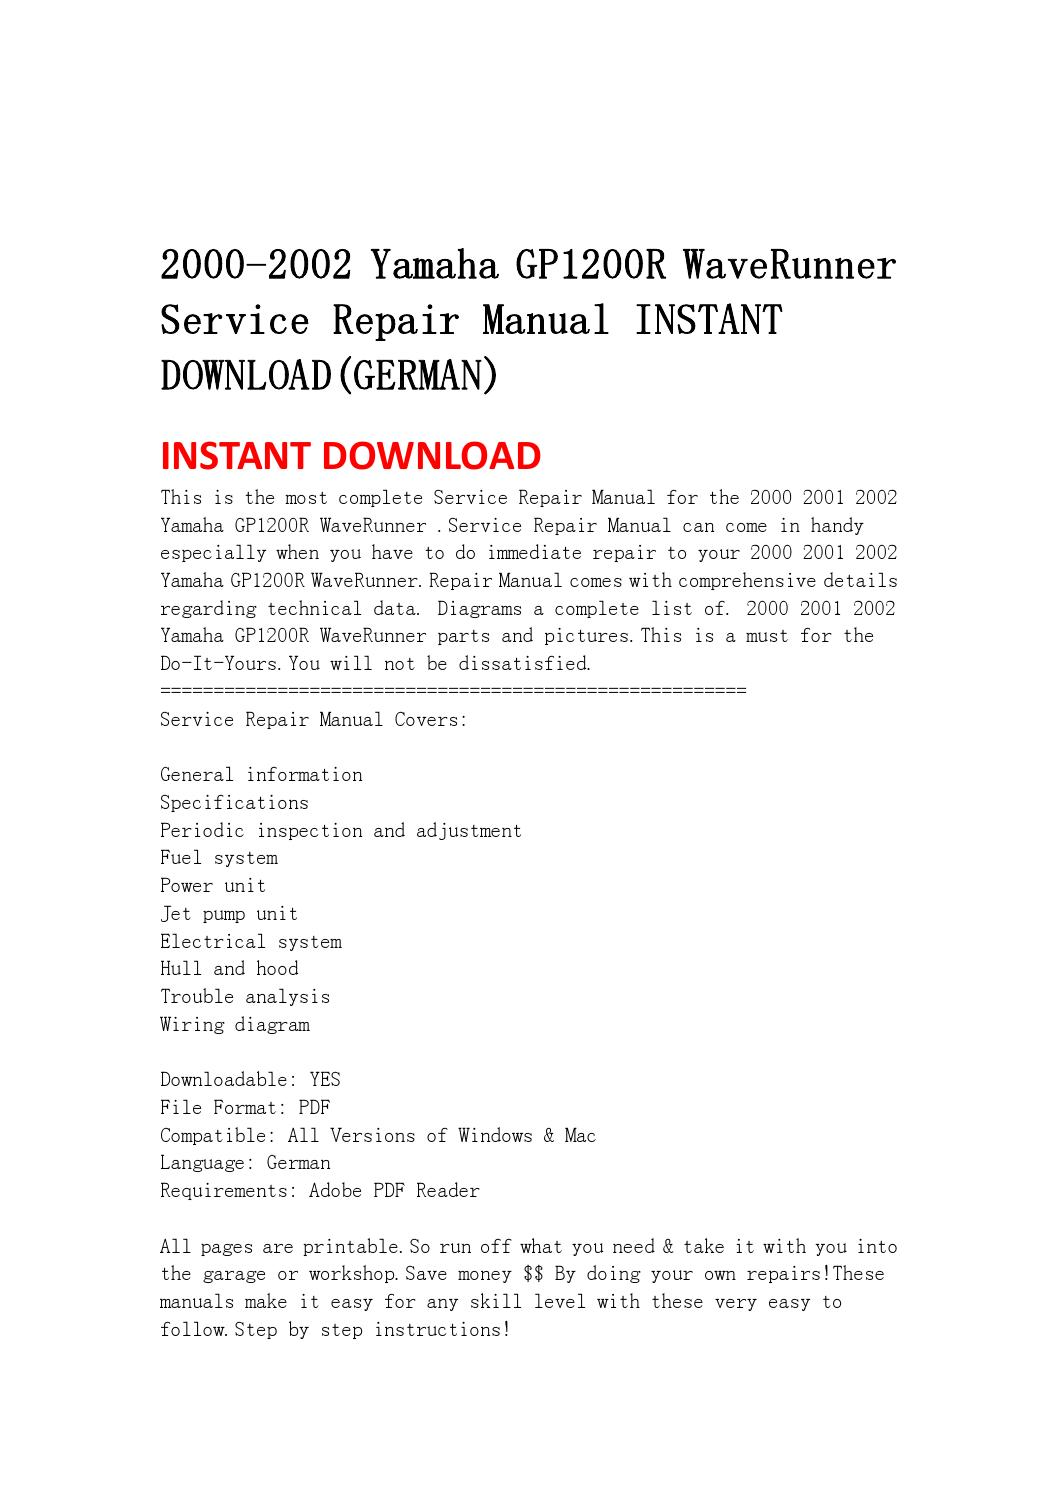 2000 2002 yamaha gp1200r waverunner service repair manual instant  download(german by jnshefjsne - issuu